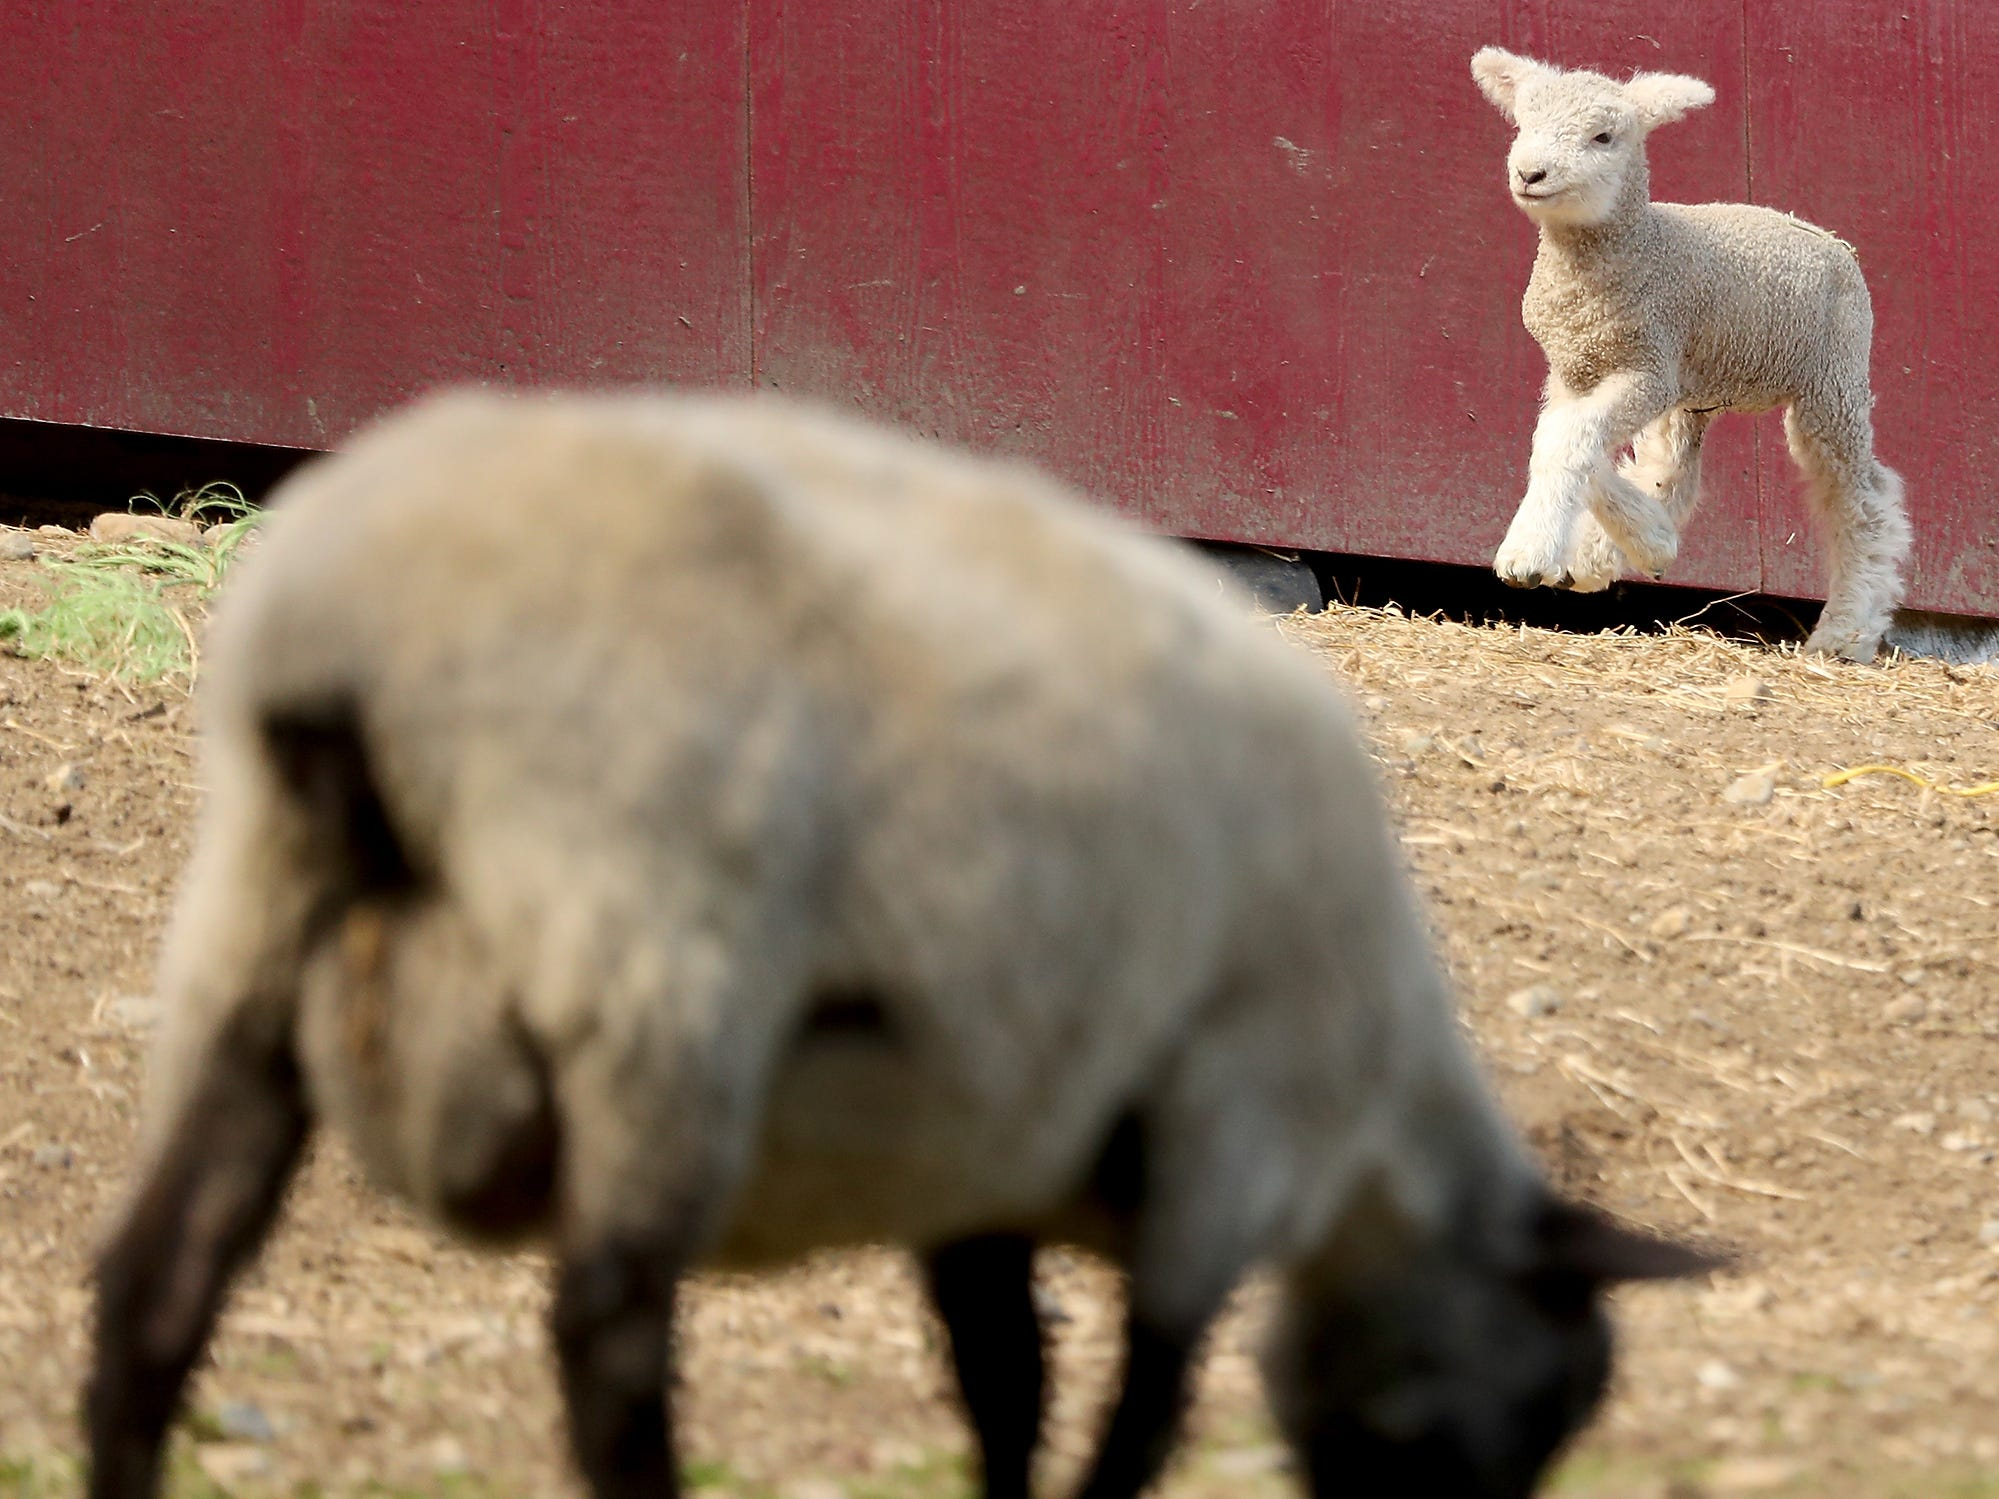 Lambs frolic in their pasture at Scandia Creek Farm in Pouslbo on March 22, 2019.